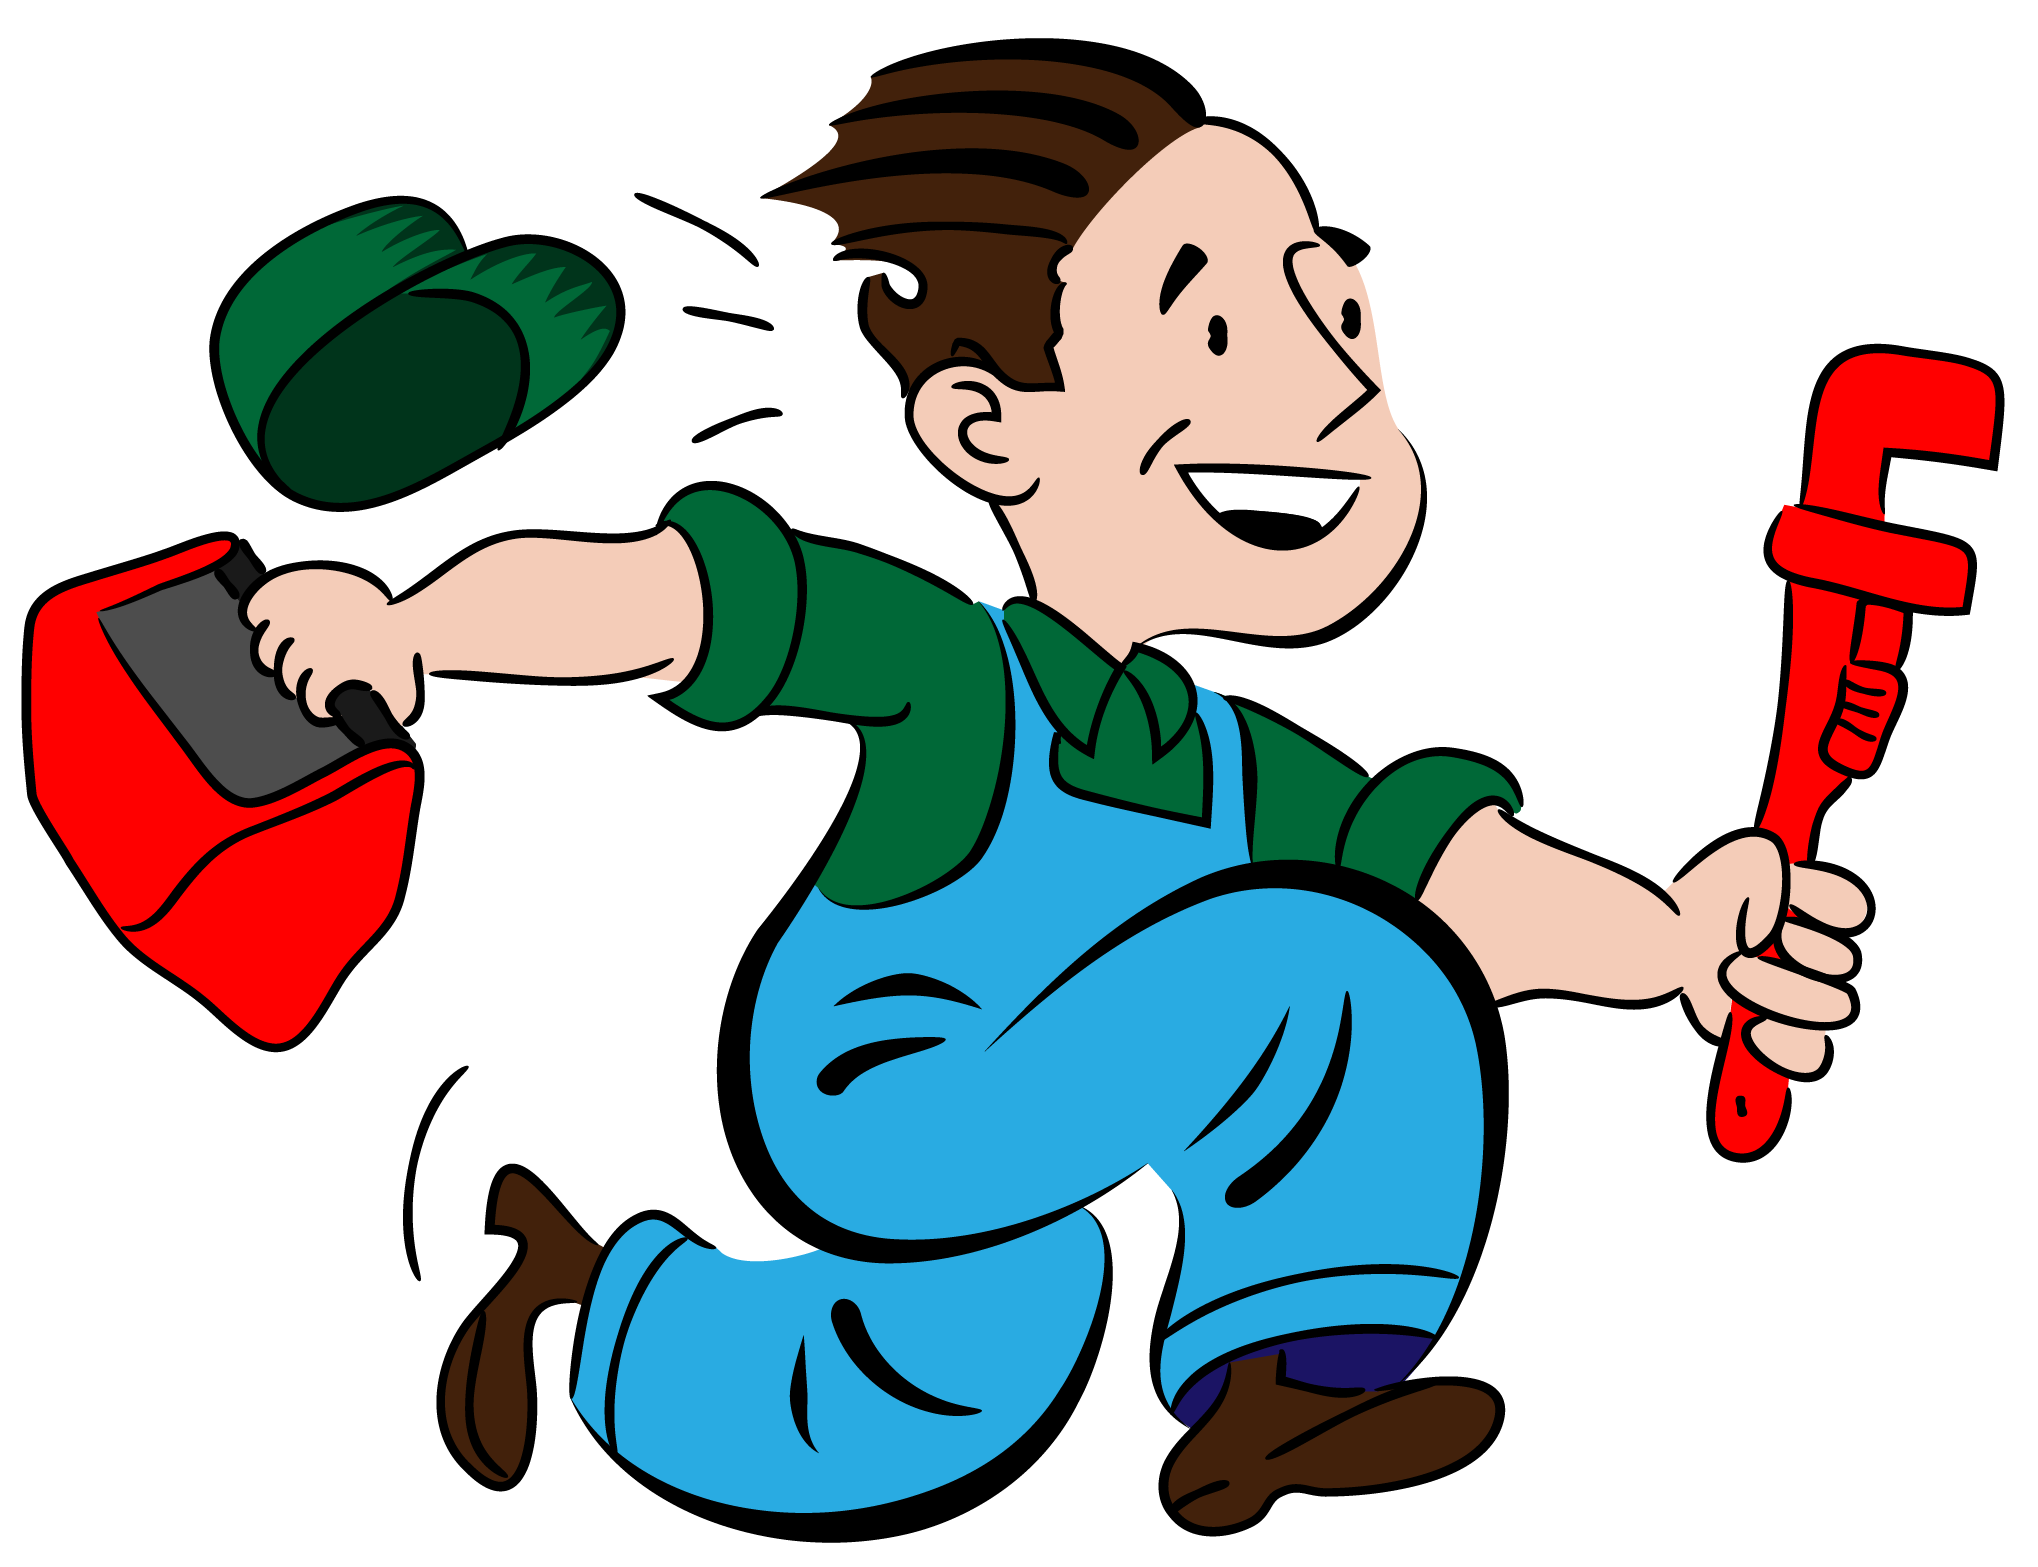 Sv repair mold removal. Plumber clipart water damage